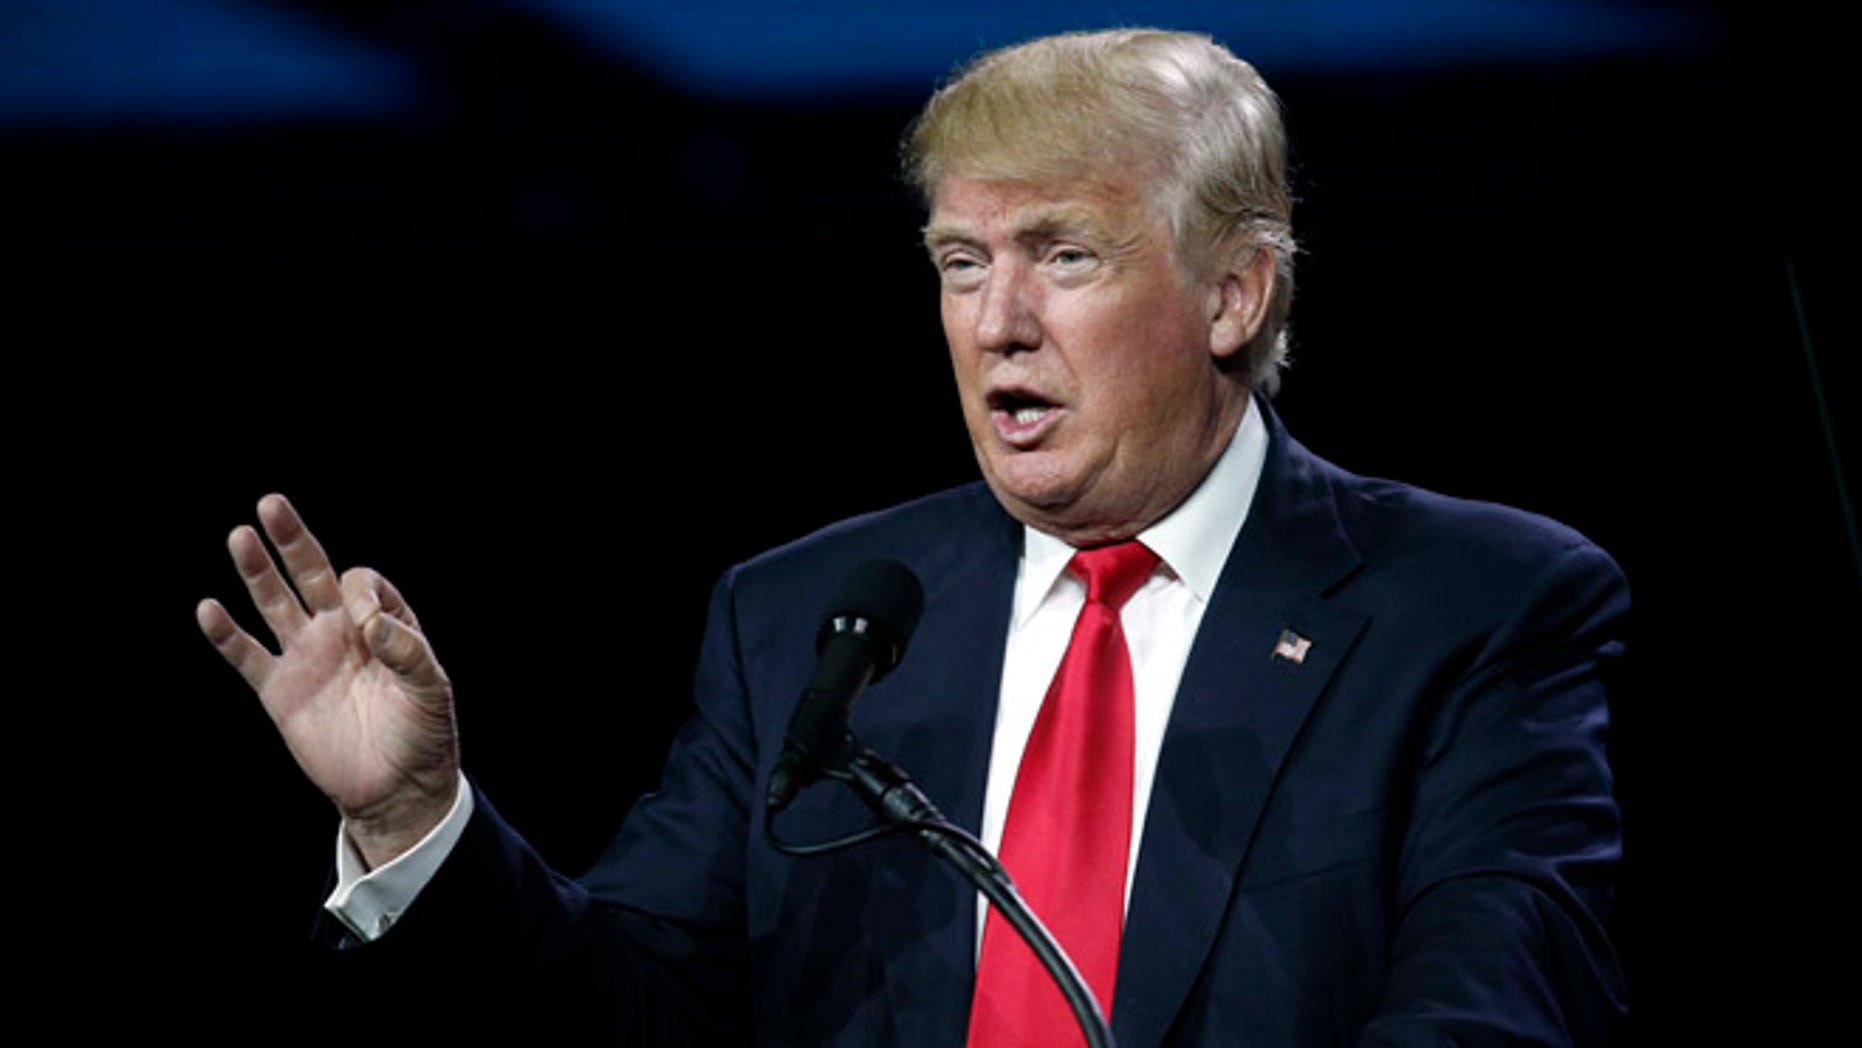 In this July 1, 2016, photo, Republican presidential candidate Donald Trump speaks during the opening session of the Western Conservative Summit in Denver. Once a swing state in presidential elections, Colorado has teetered on the brink of becoming solidly Democratic. Trump may have pushed it over the edge. Trumpââ¬â¢s disparaging words about Mexicans, negative comments about women and weak campaign organization have punctuated the stateââ¬â¢s shift from a nip-and-tuck battleground to one thatââ¬â¢s Democratic-friendly. For the first time in more than 20 years, there are now more registered Democrats in the state than Republicans. (AP Photo/David Zalubowski)